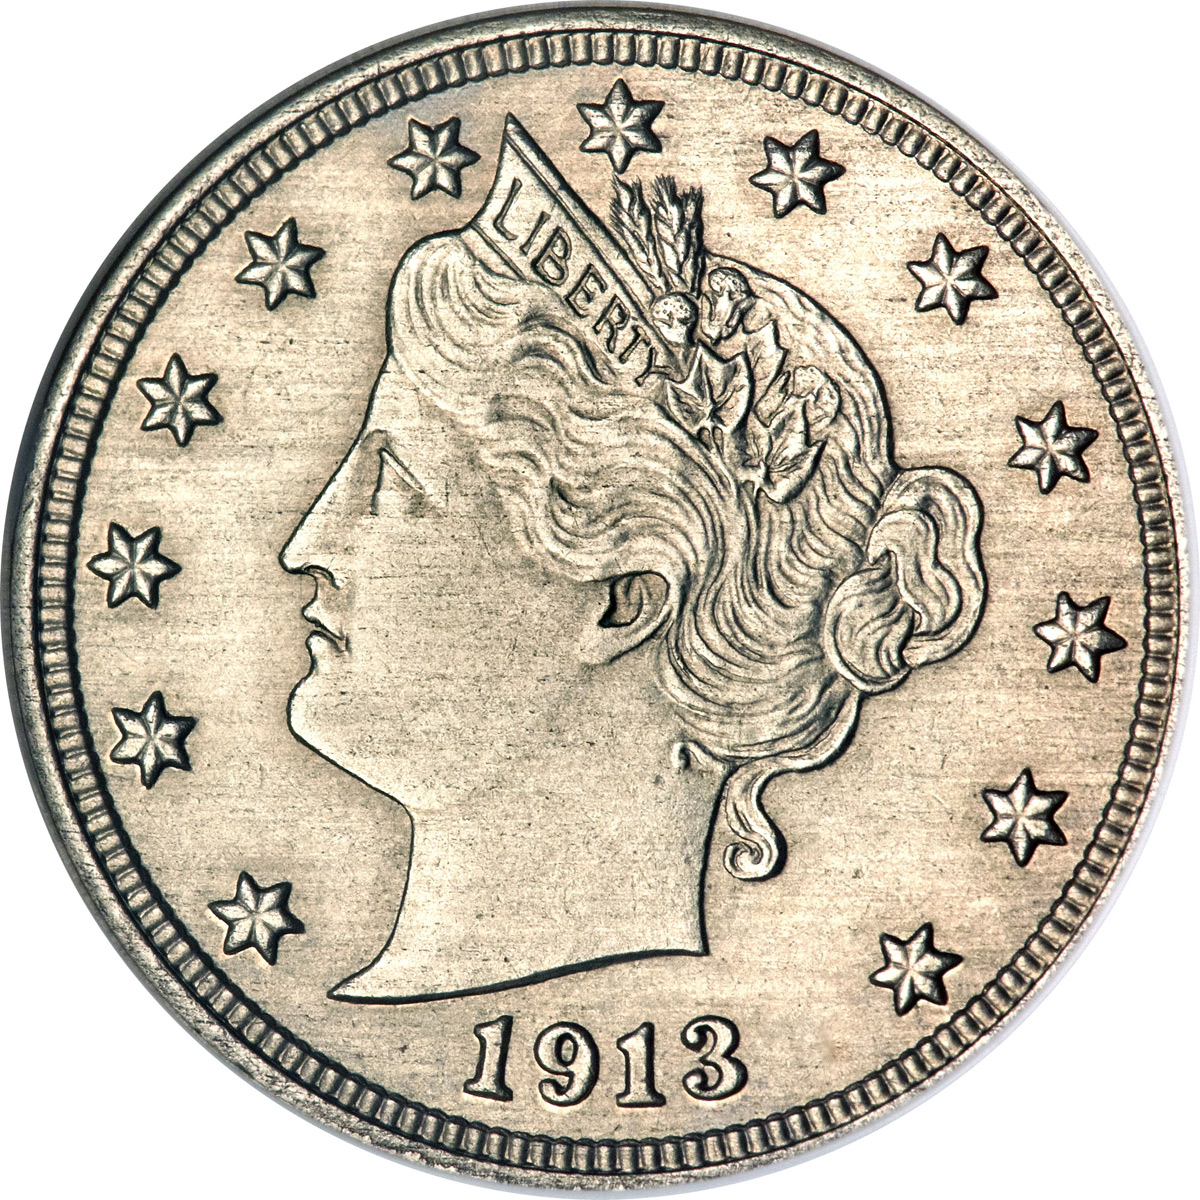 Heritage Auctions' U.S. Signature Coin Auction at the Florida